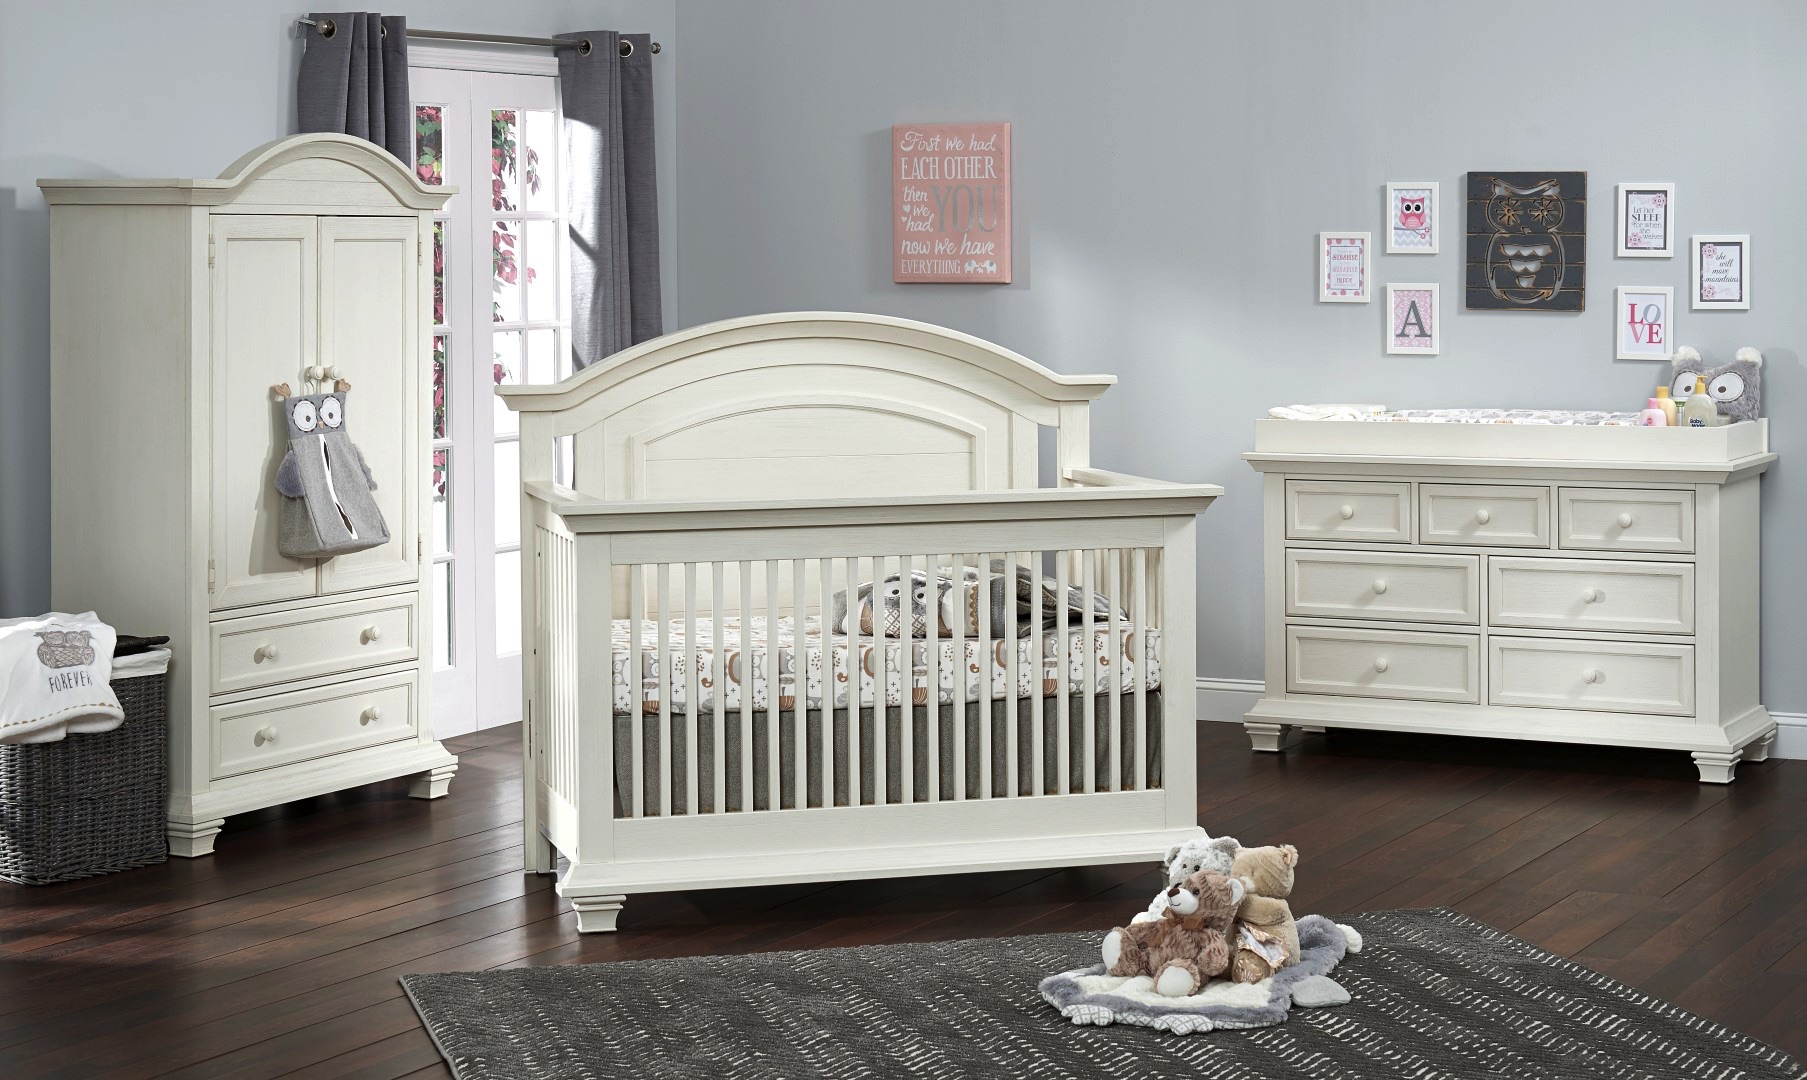 lady amazoncom nursery cribs bug l best piece baby crib sets vintage